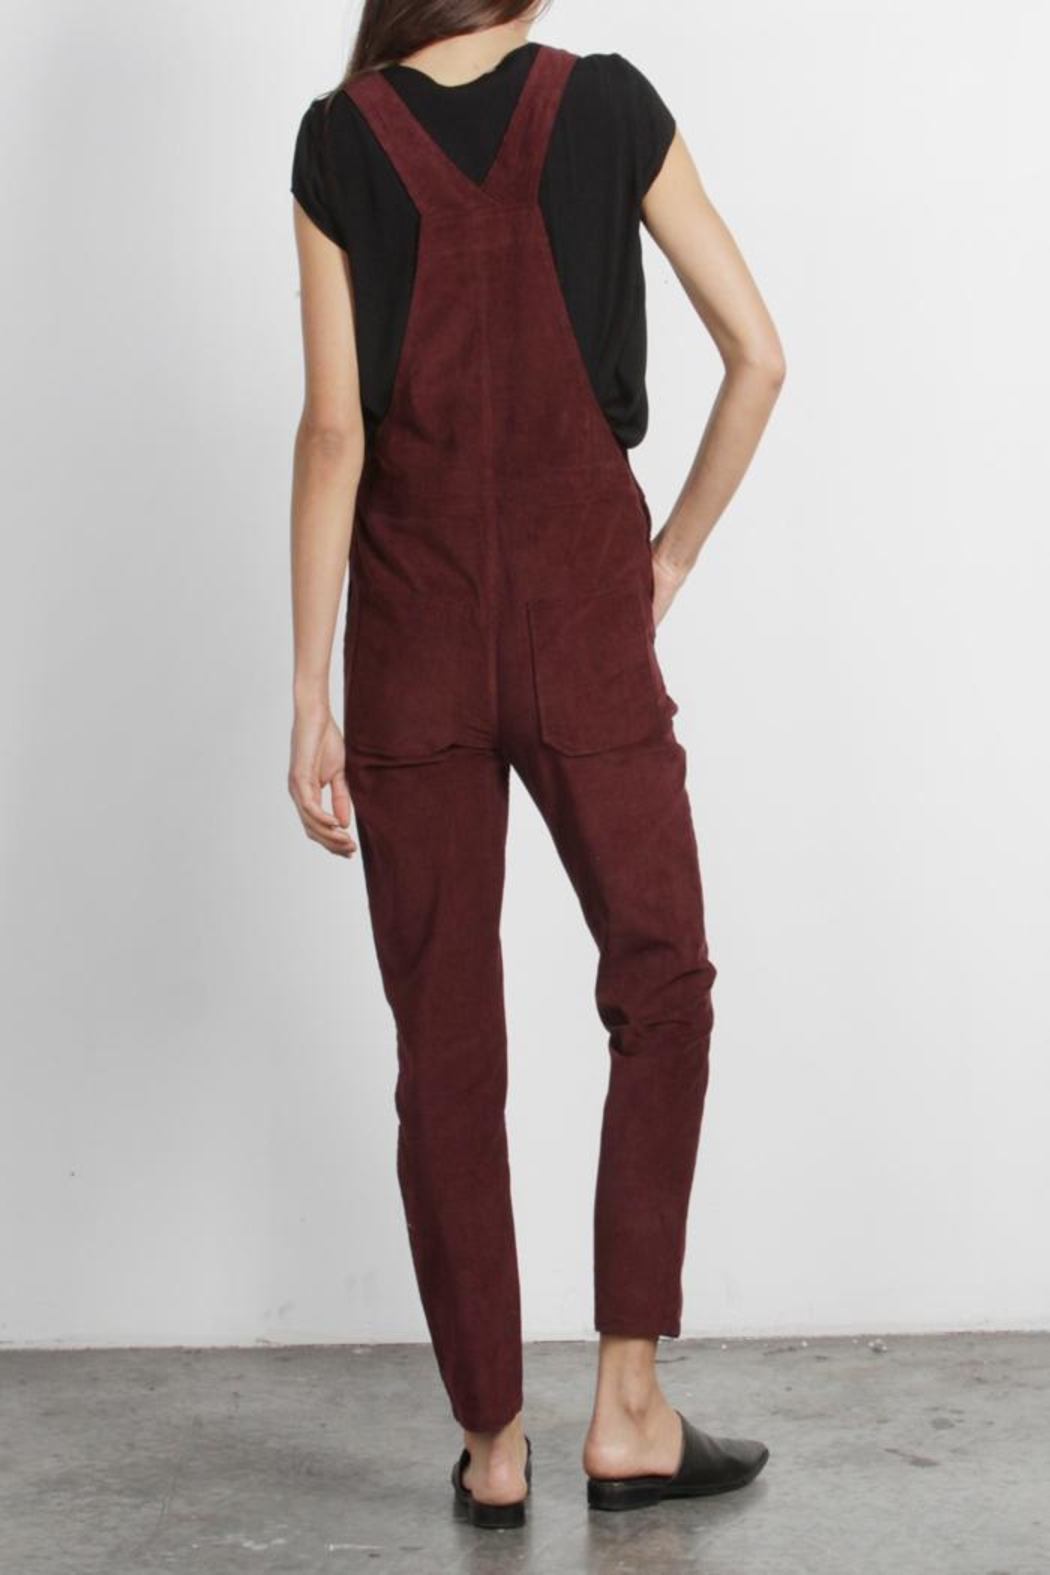 Mod Ref Burgundy Corduroy Overalls - Side Cropped Image